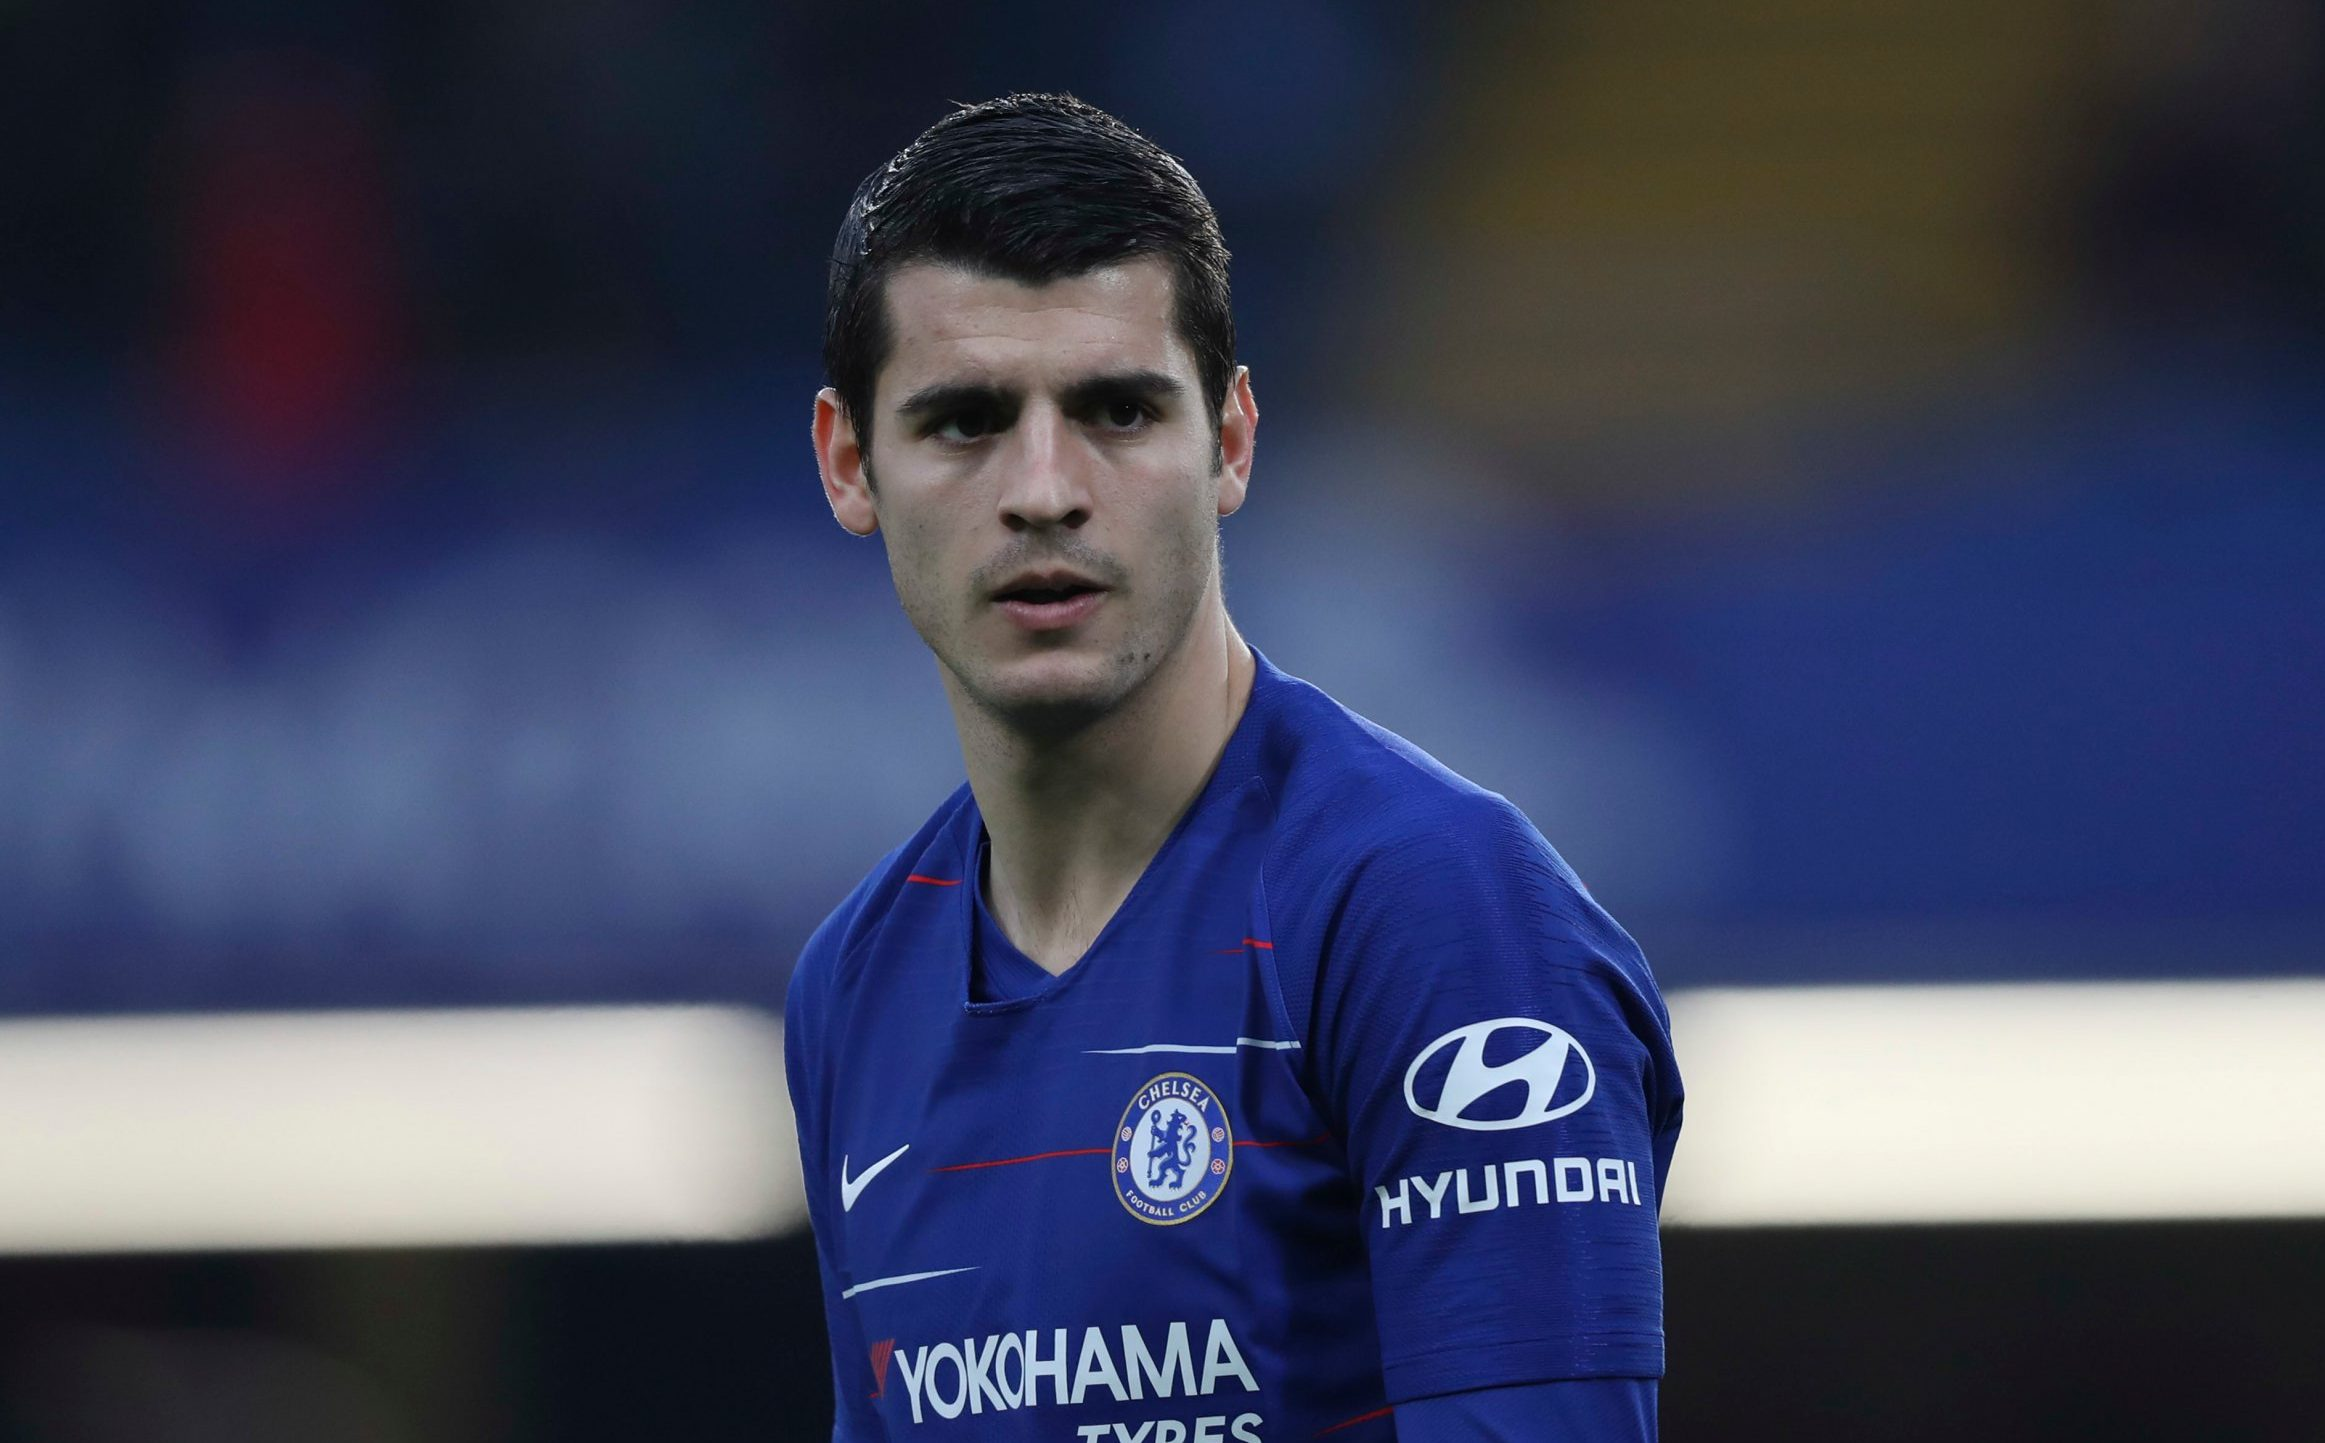 Alvaro Morata seeking Chelsea exit as agent holds talks with Sevilla